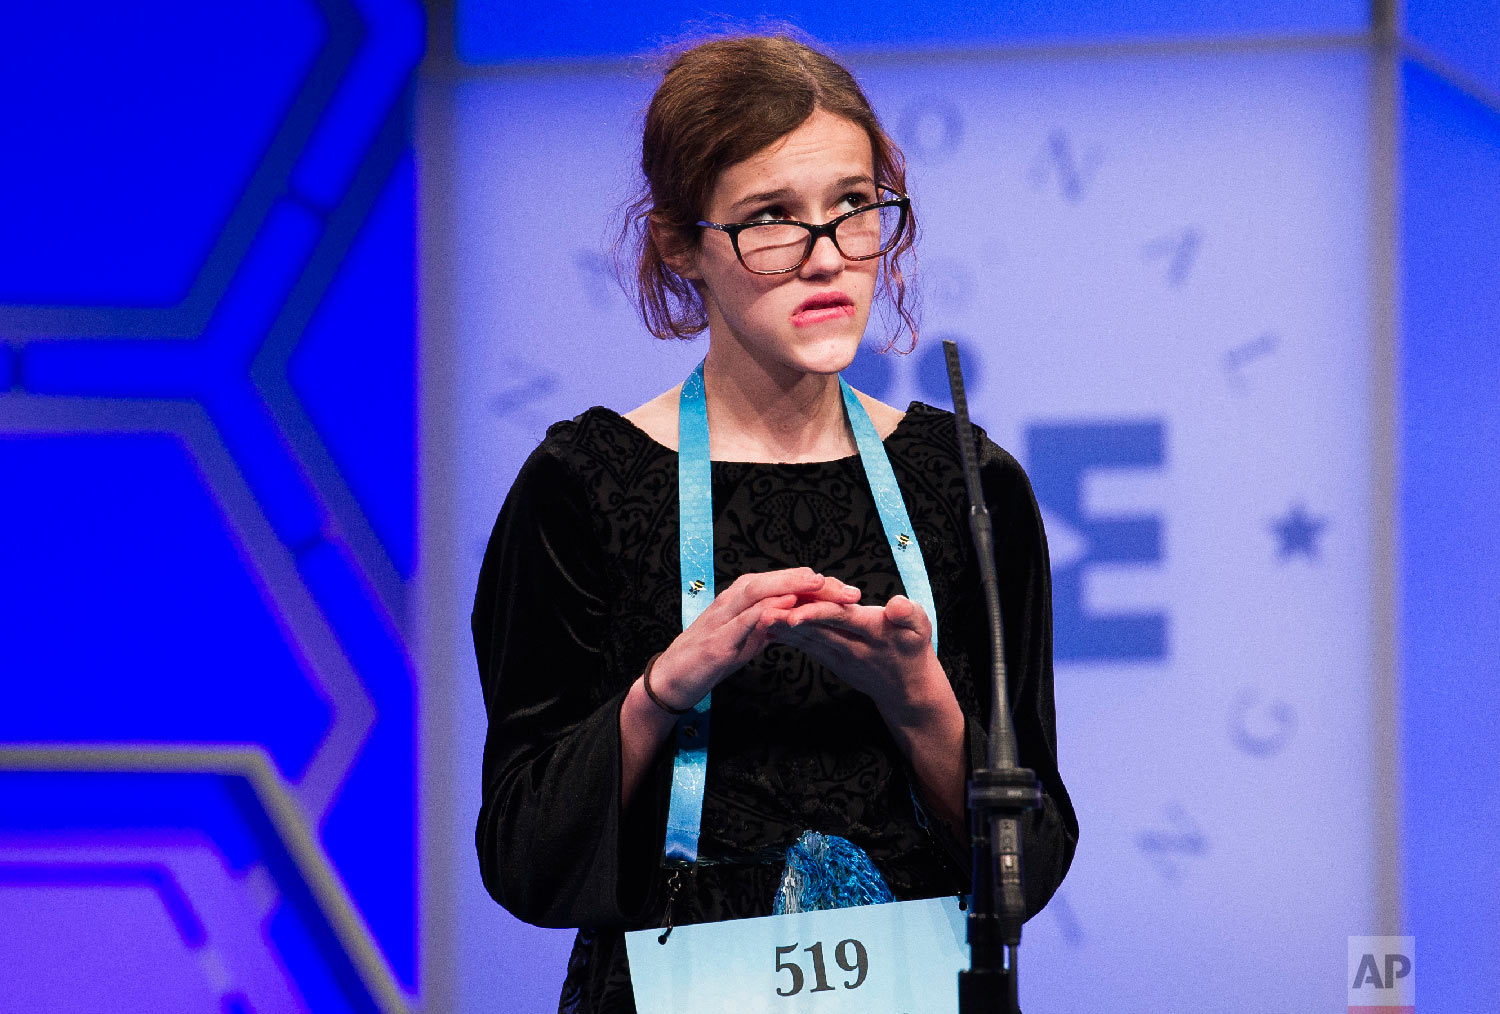 The last speller of the day, Eleanor Tallman, 13, from Flower Mound, Texas, spells her word incorrectly during the second round of the Scripps National Spelling Bee in Oxon Hill, Md., Tuesday, May 29, 2018. (AP Photo/Cliff Owen)